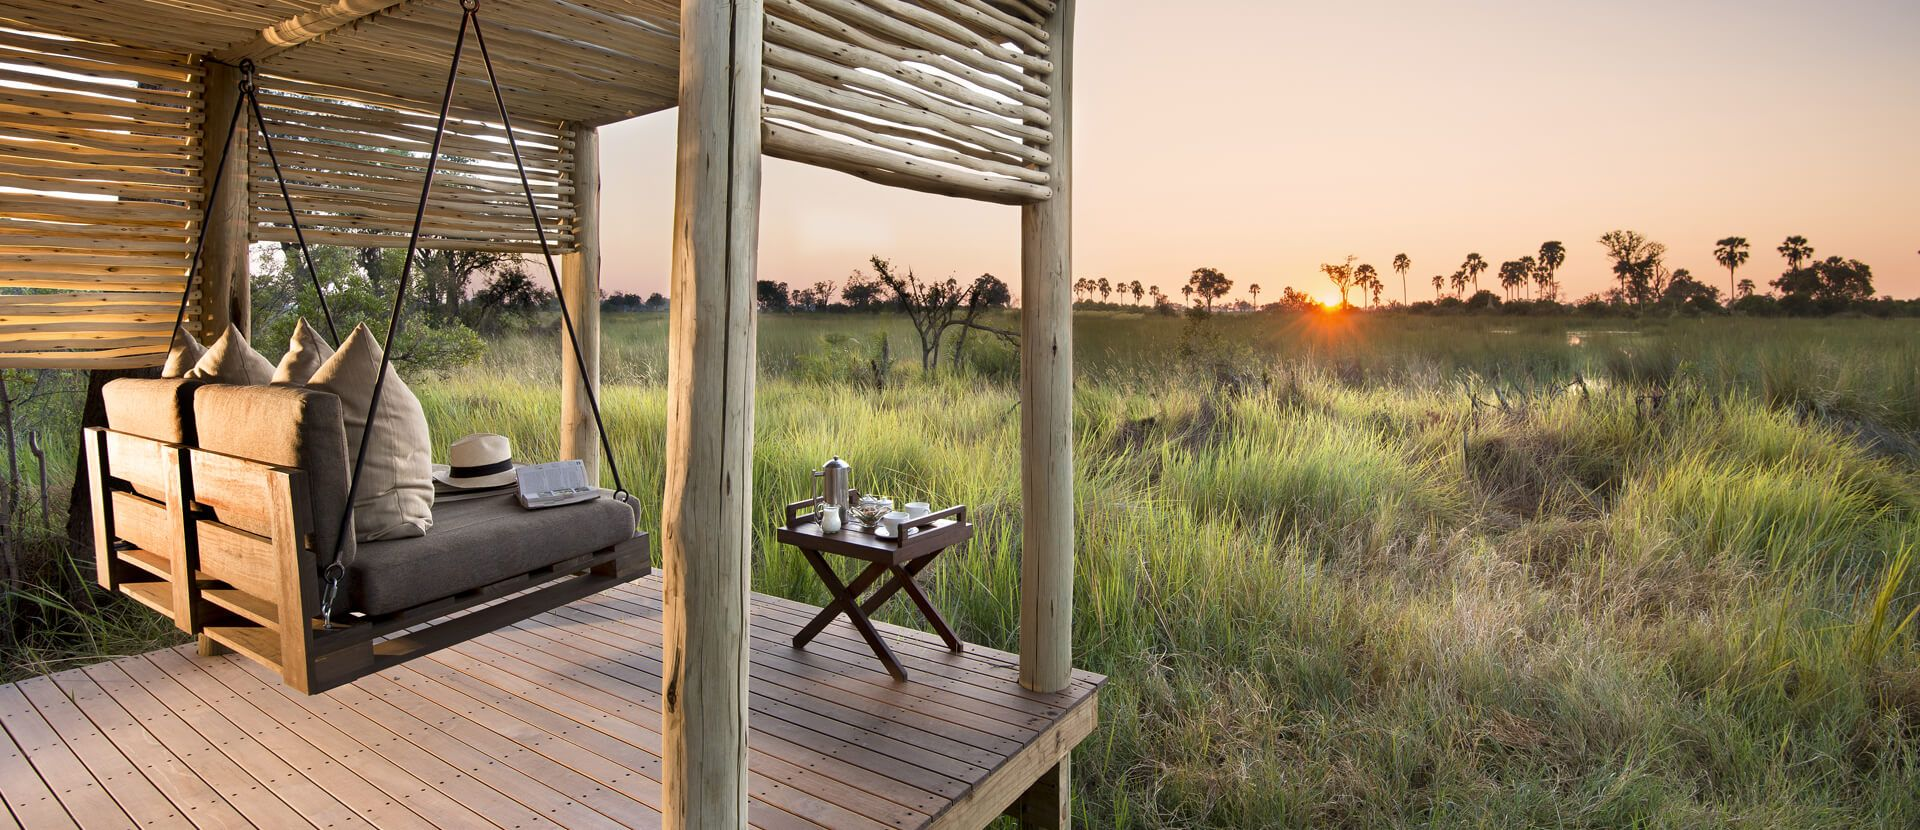 &Beyond Nxabega Okavango Tented Camp